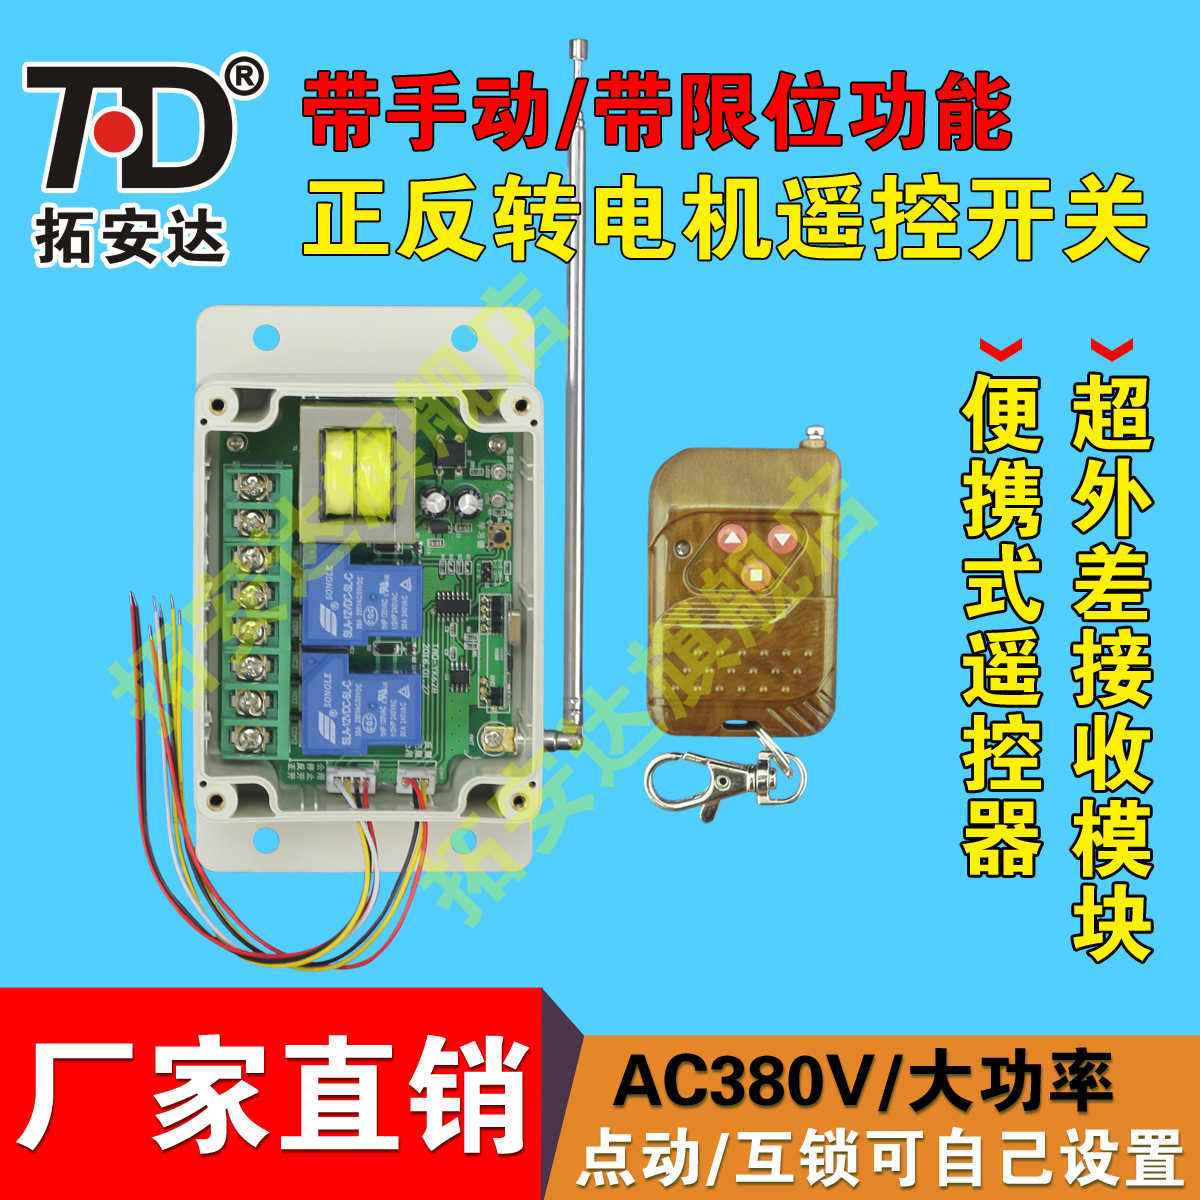 Anderson Will Shed Road Gate Volume Sluice Gate 380V Correct Reversal Remote Control Switch Bring Limit Manual Interface SWITCH 330mhz 8 dip switch 5326 auto gate duplicate remote control